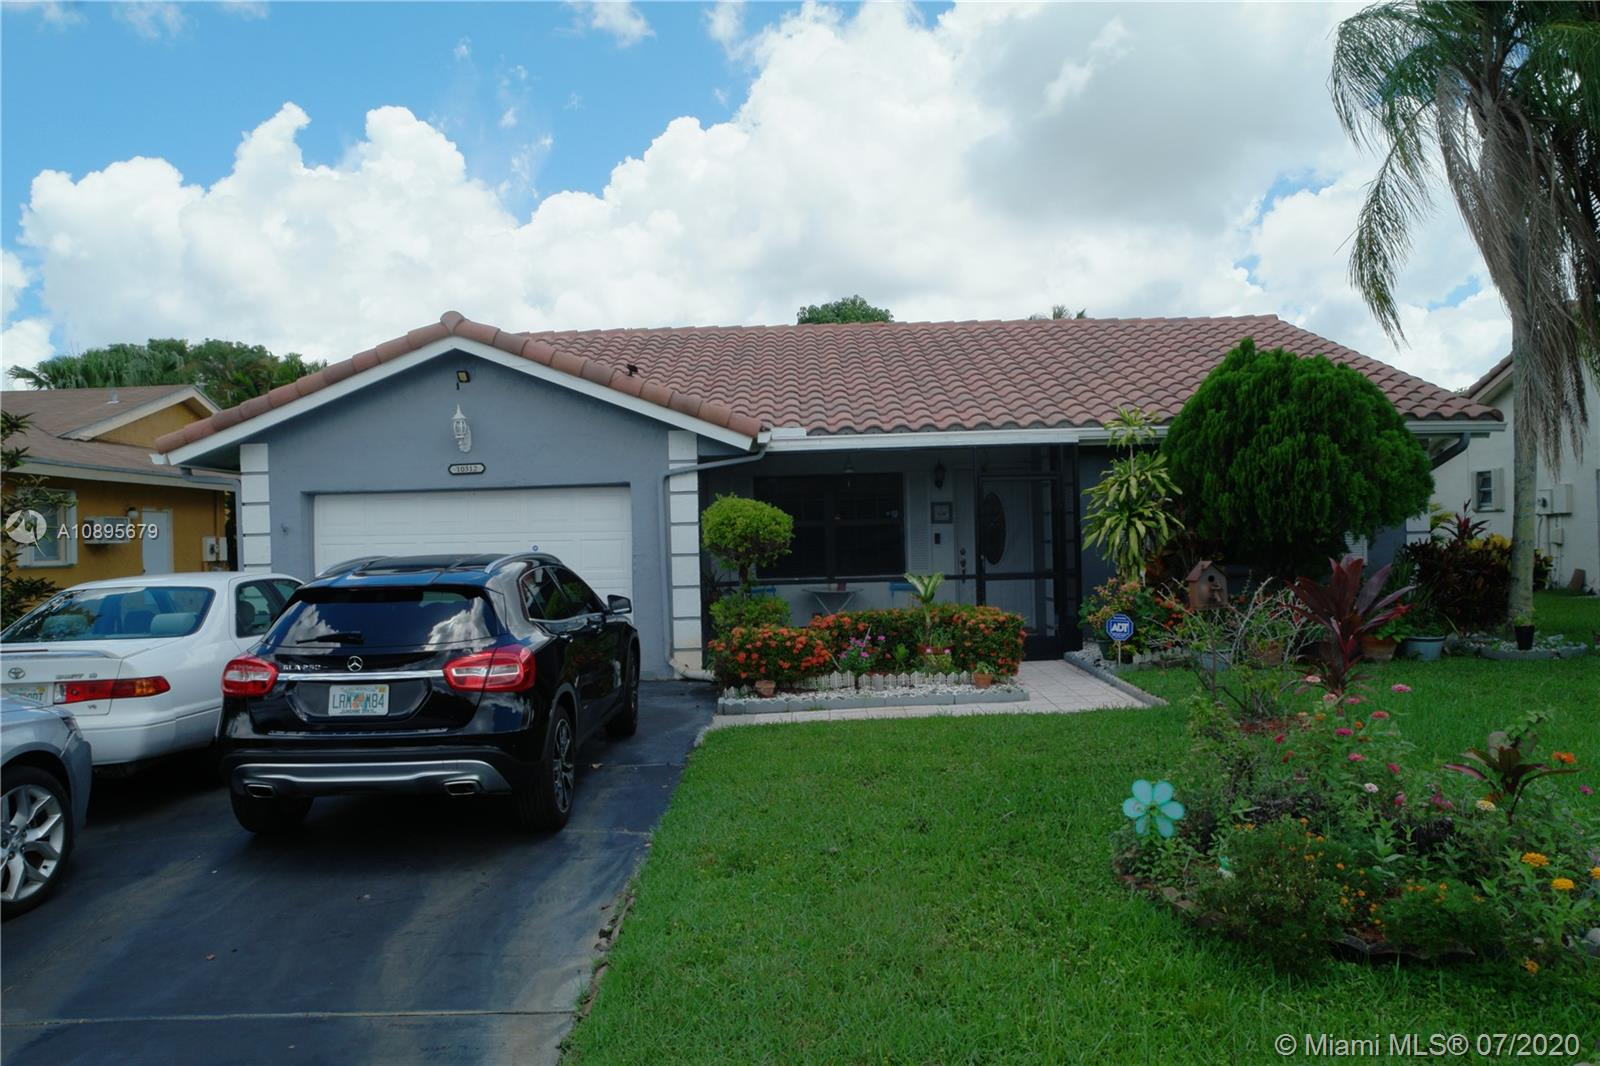 Must See!! Beautiful 2 Bedroom, 2 bathrooms, 1 car garage Single Family Home in the Desirable ISLES OF TAMARAC 55+ community. Granite countertops in kitchen, wood floors, and Jacuzzi tub in the Master. Very spacious, with room for a 3rd bedroom.